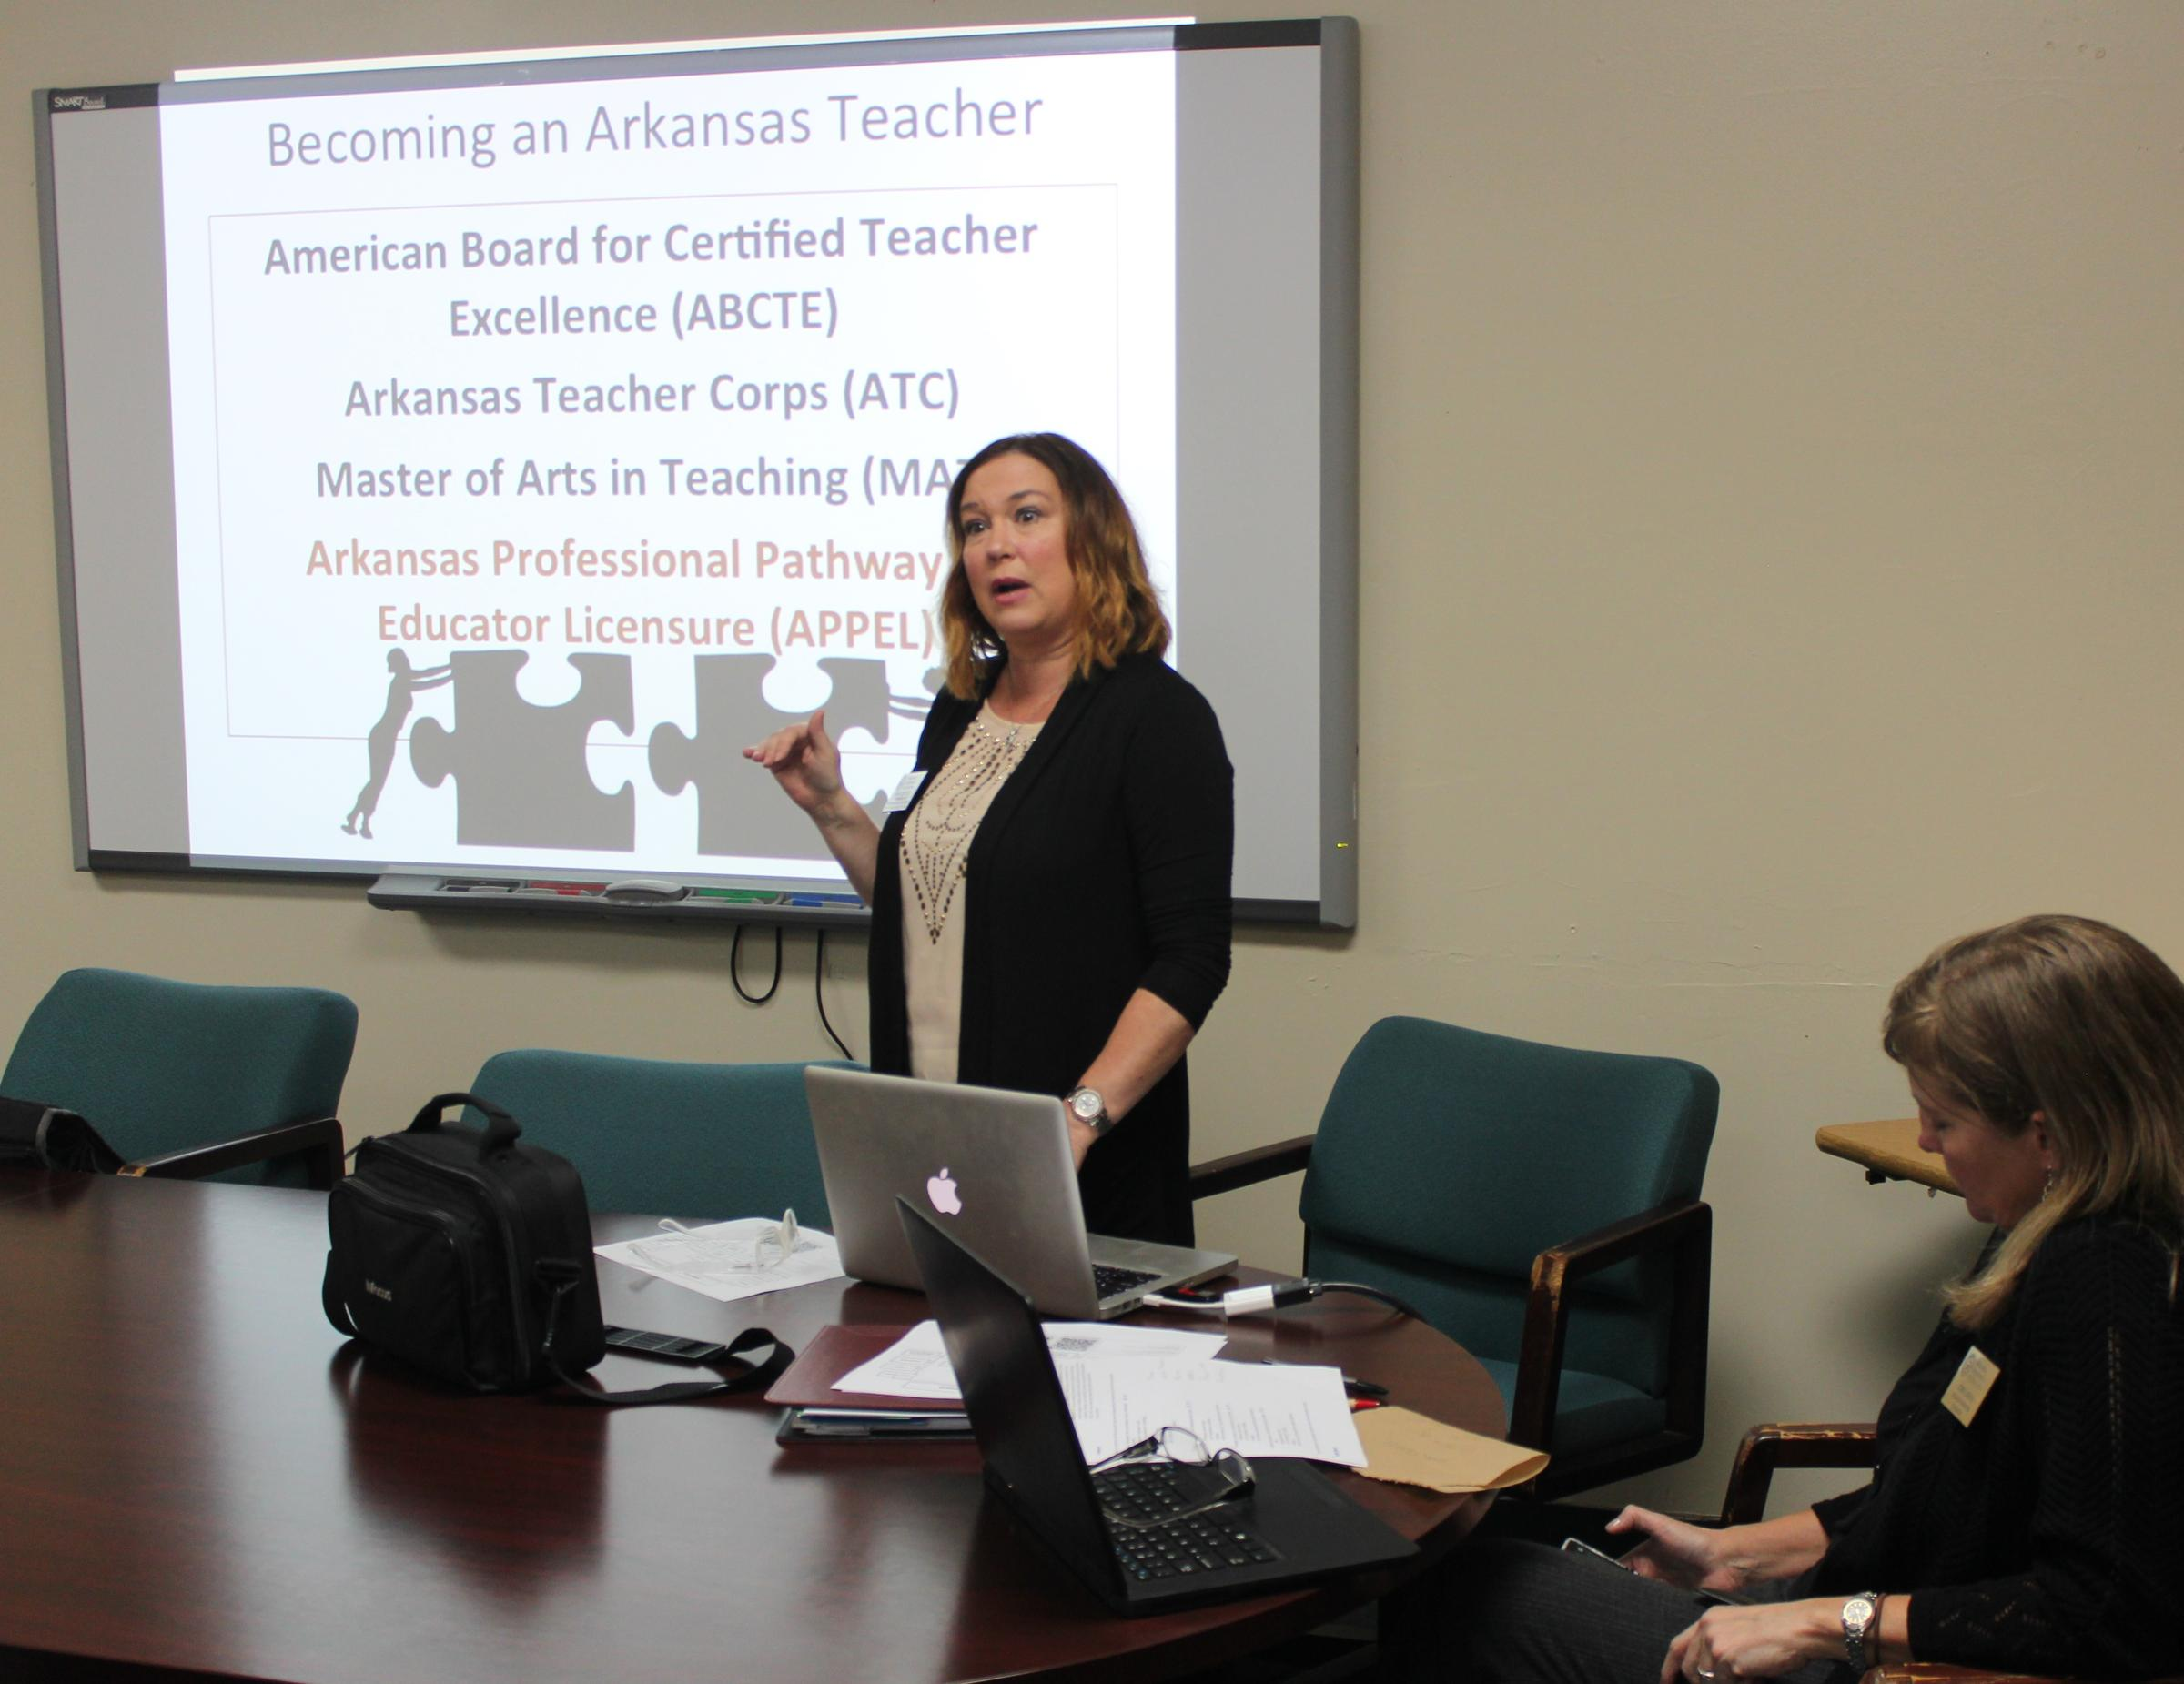 Arkansas schools hire untrained teachers as people lose interest view slideshow 6 of 6 1betcityfo Images